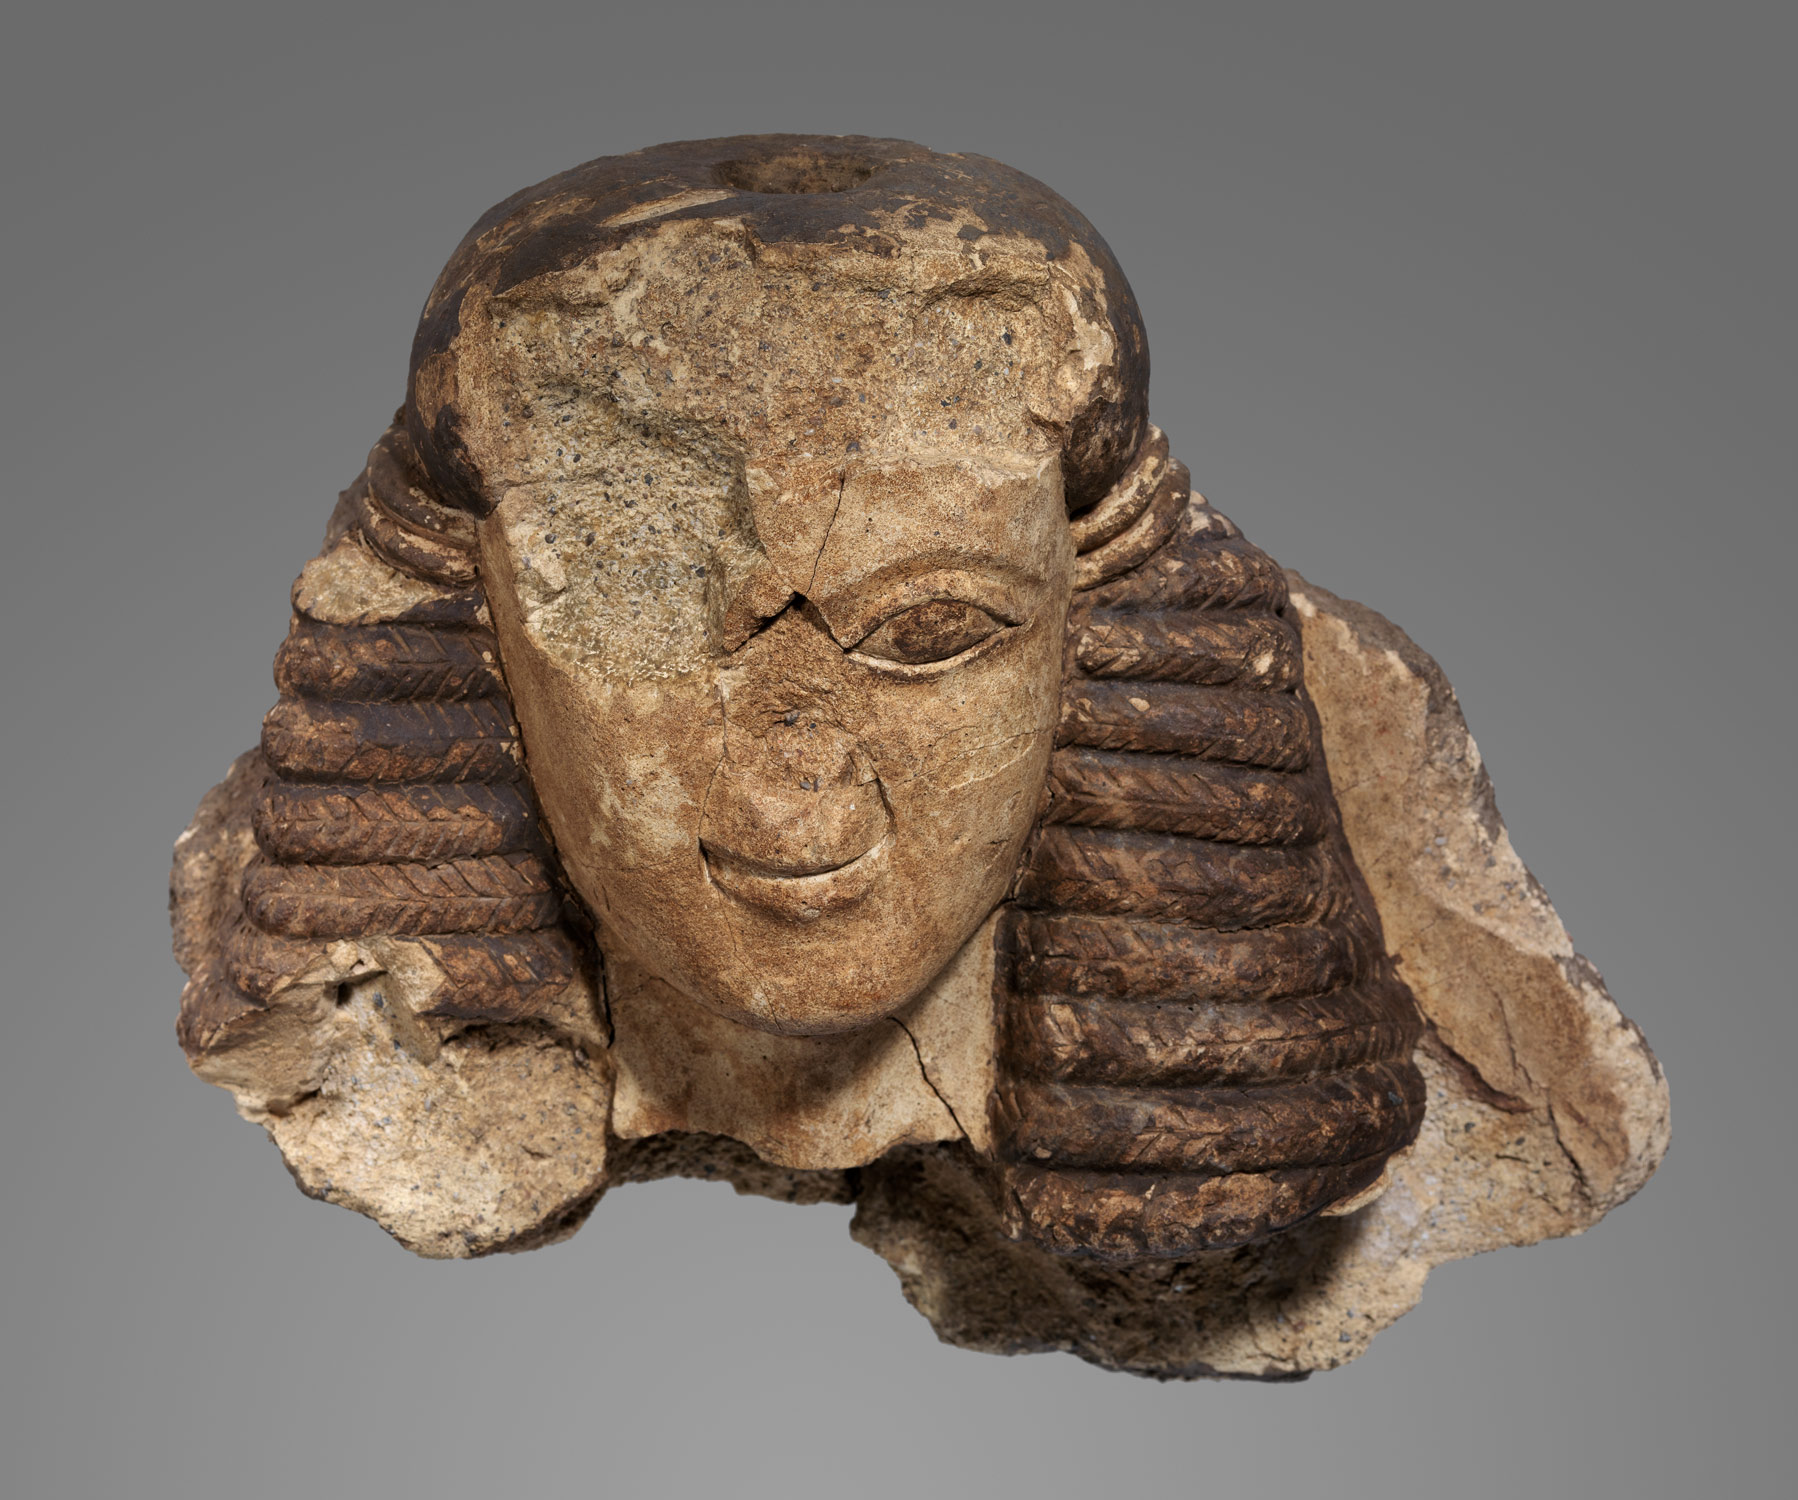 Antefix in the shape of a female head